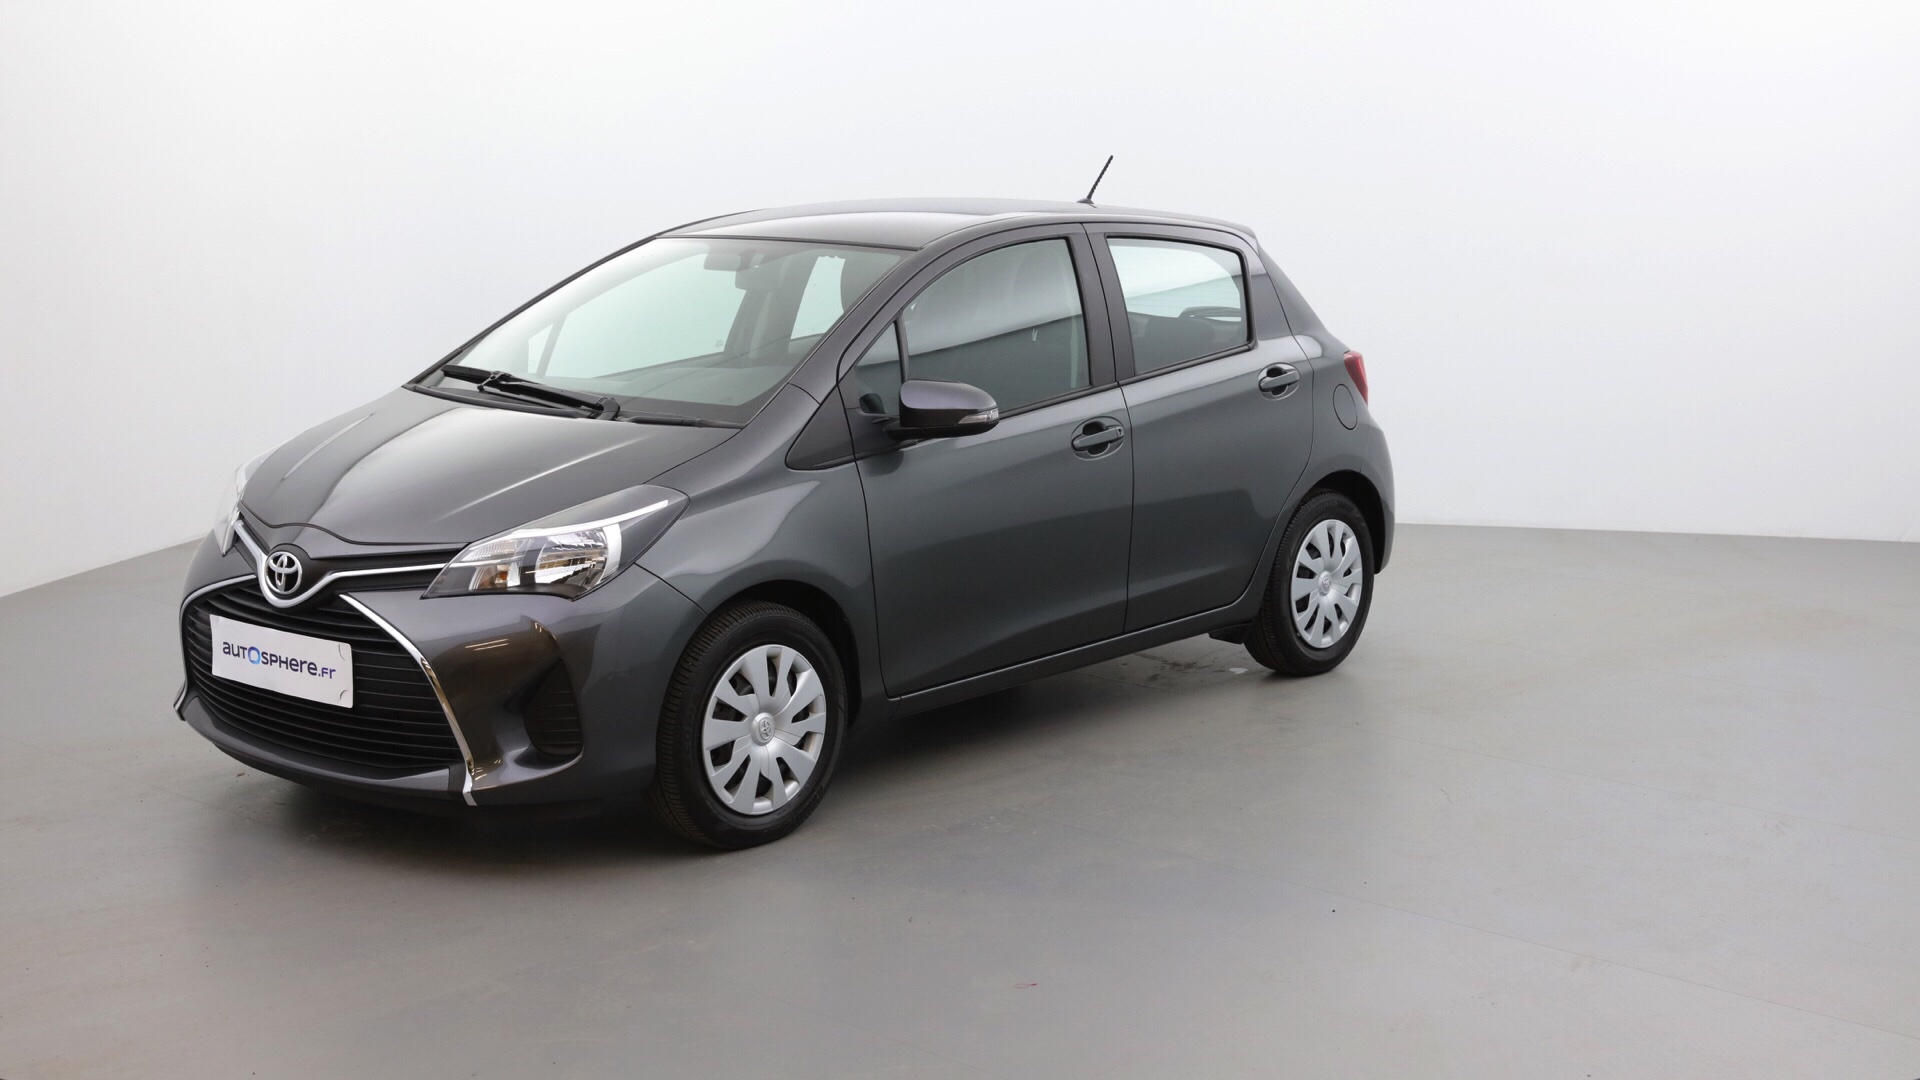 TOYOTA YARIS 69 VVT-I FRANCE 5P - Photo 1